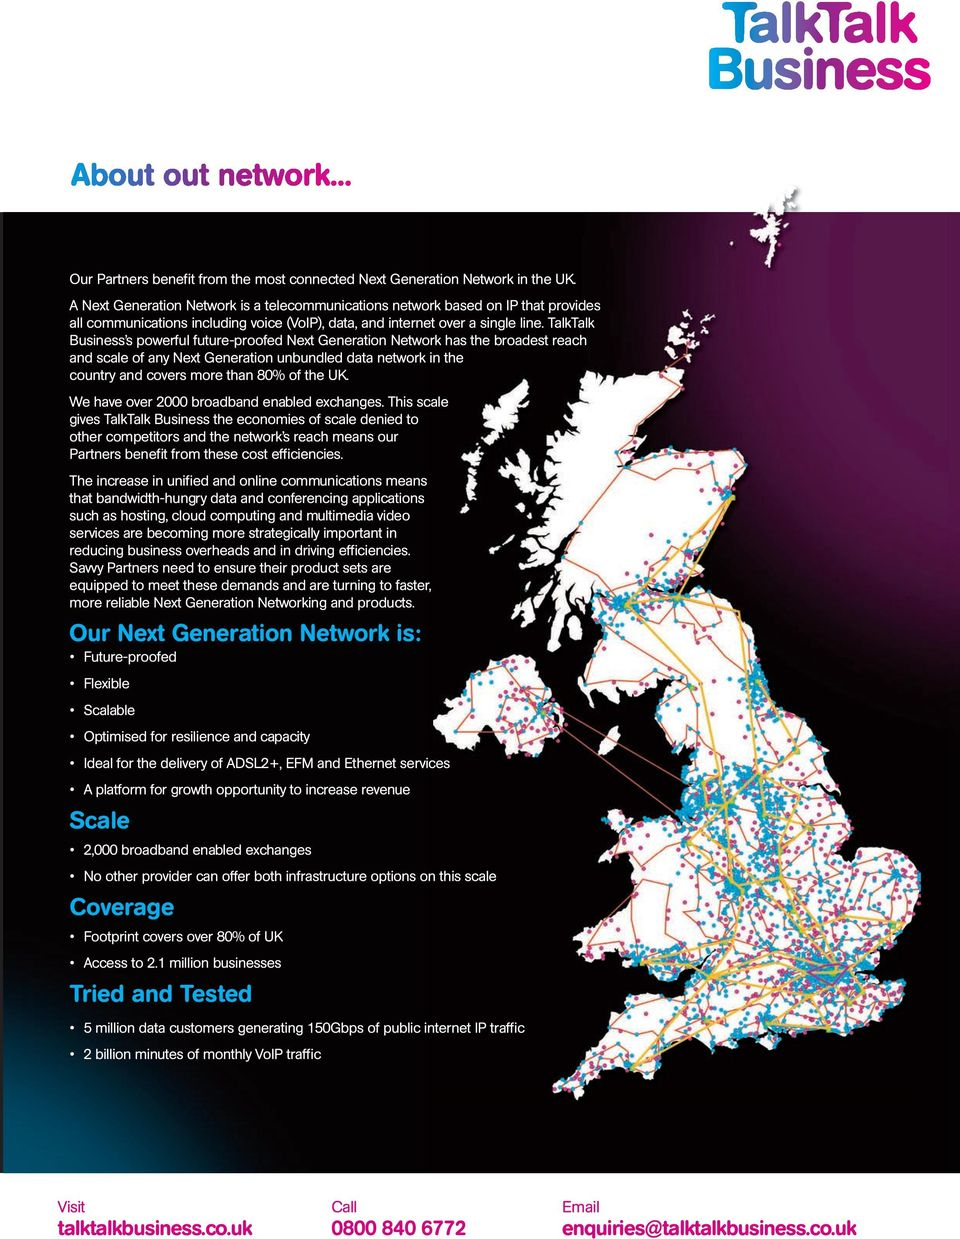 TalkTalk Business s powerful future-proofed Next Generation Network has the broadest reach and scale of any Next Generation unbundled data network in the country and covers more than 80% of the UK.